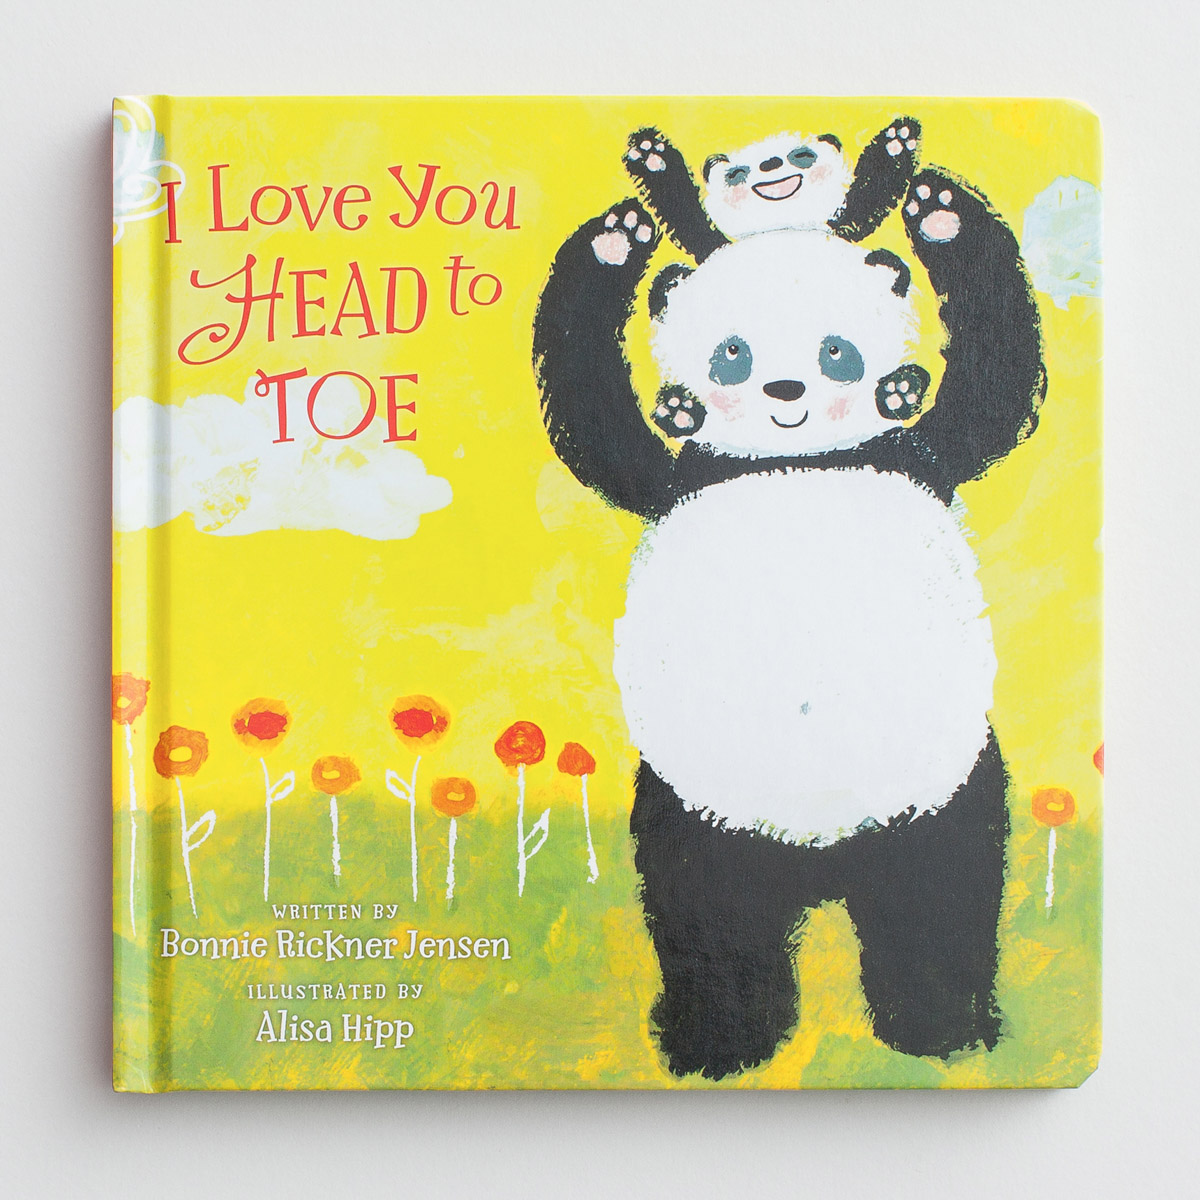 I Love You Head to Toe - Inspirational Children's Book